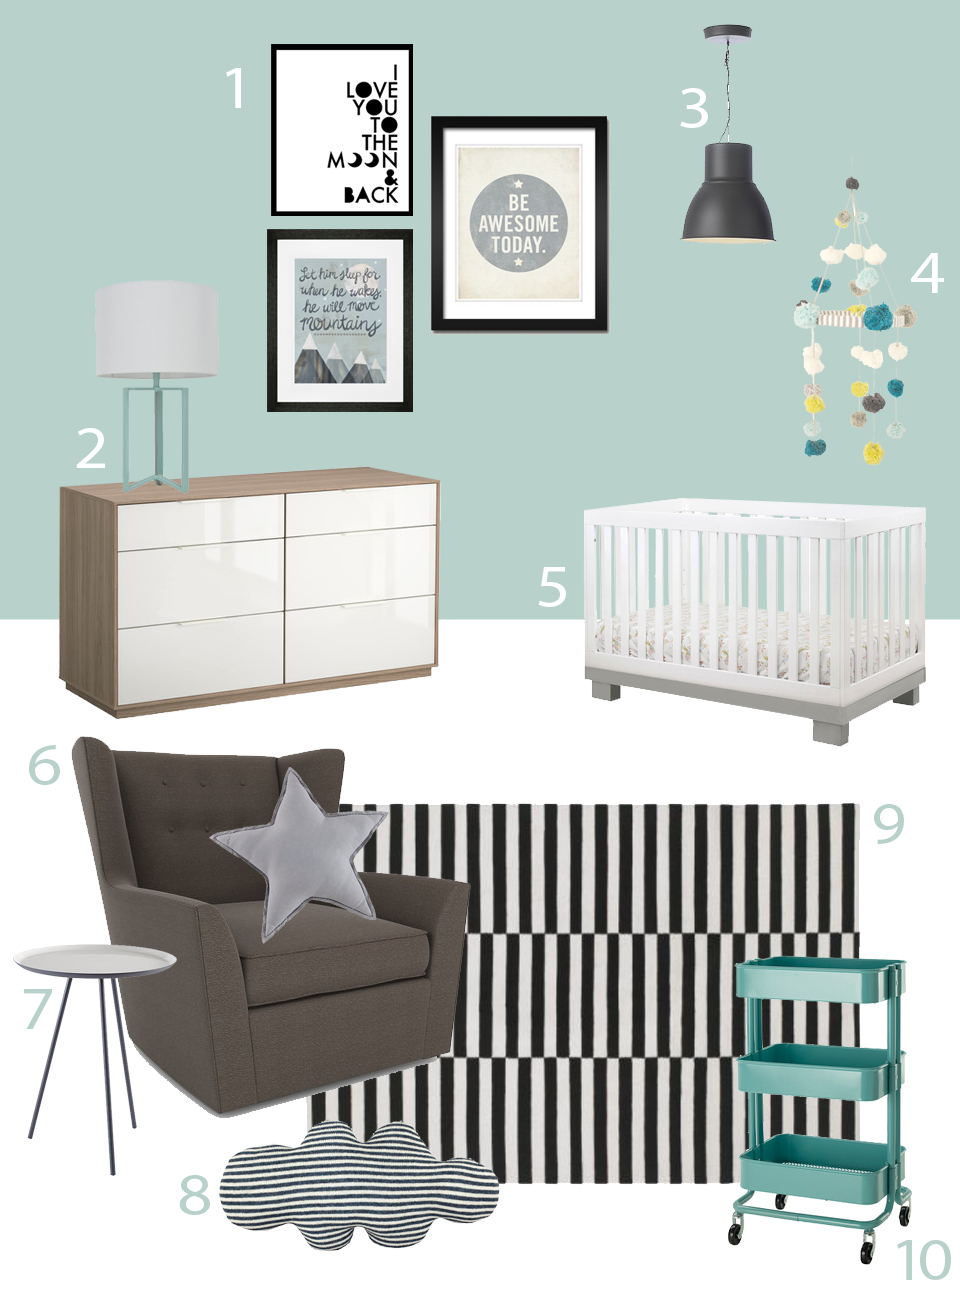 My Modern Nursery 82 Jessica's Nursery for Baby #2